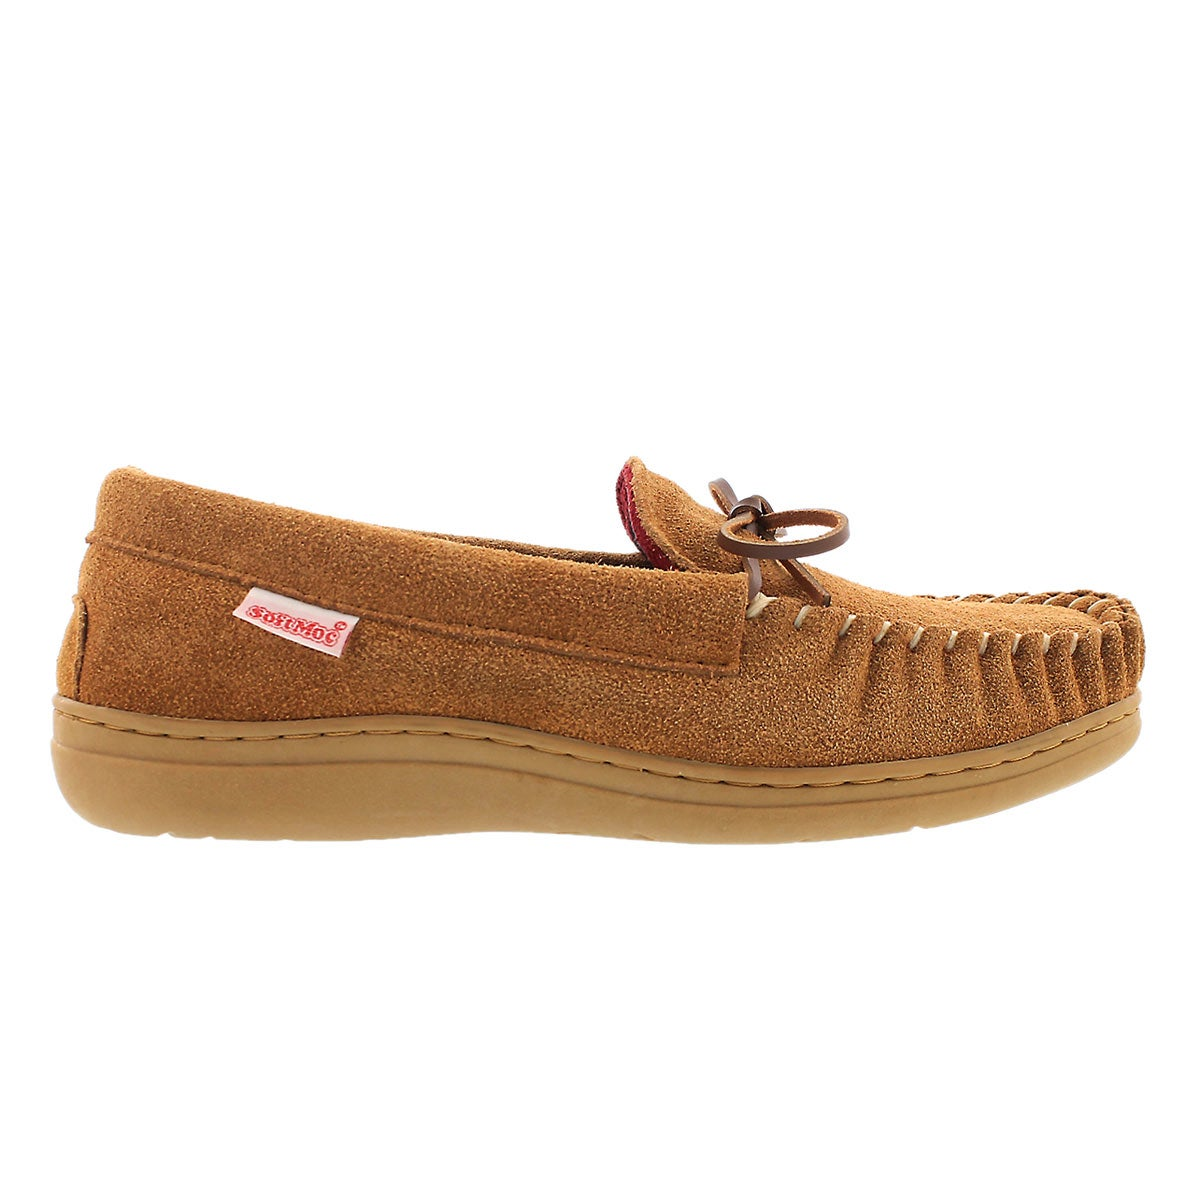 Mns Dusk ches suede moccasin